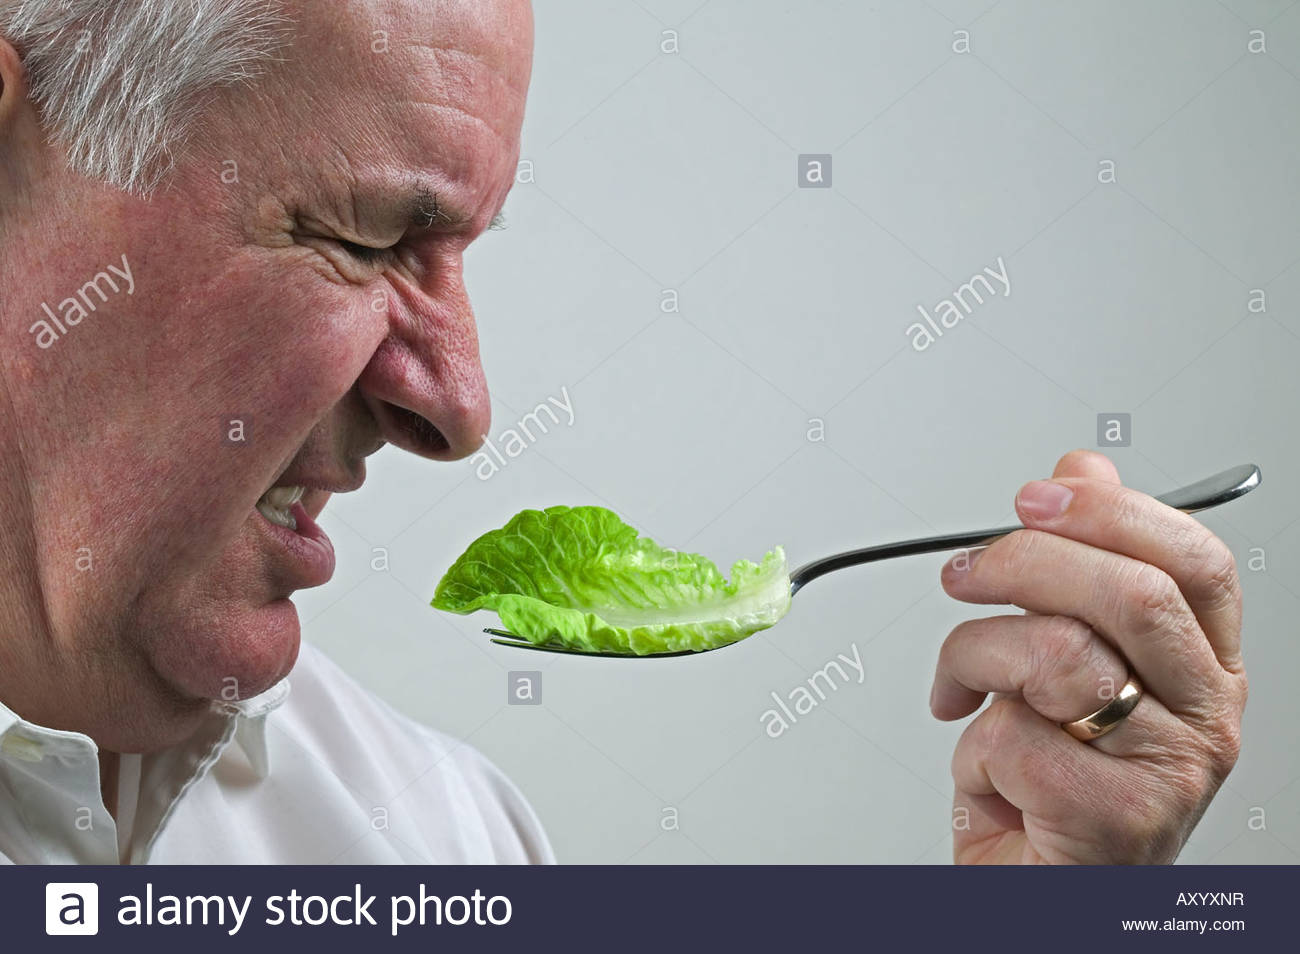 Man turning up his nose at lettuce leaf from a salad - Stock Image